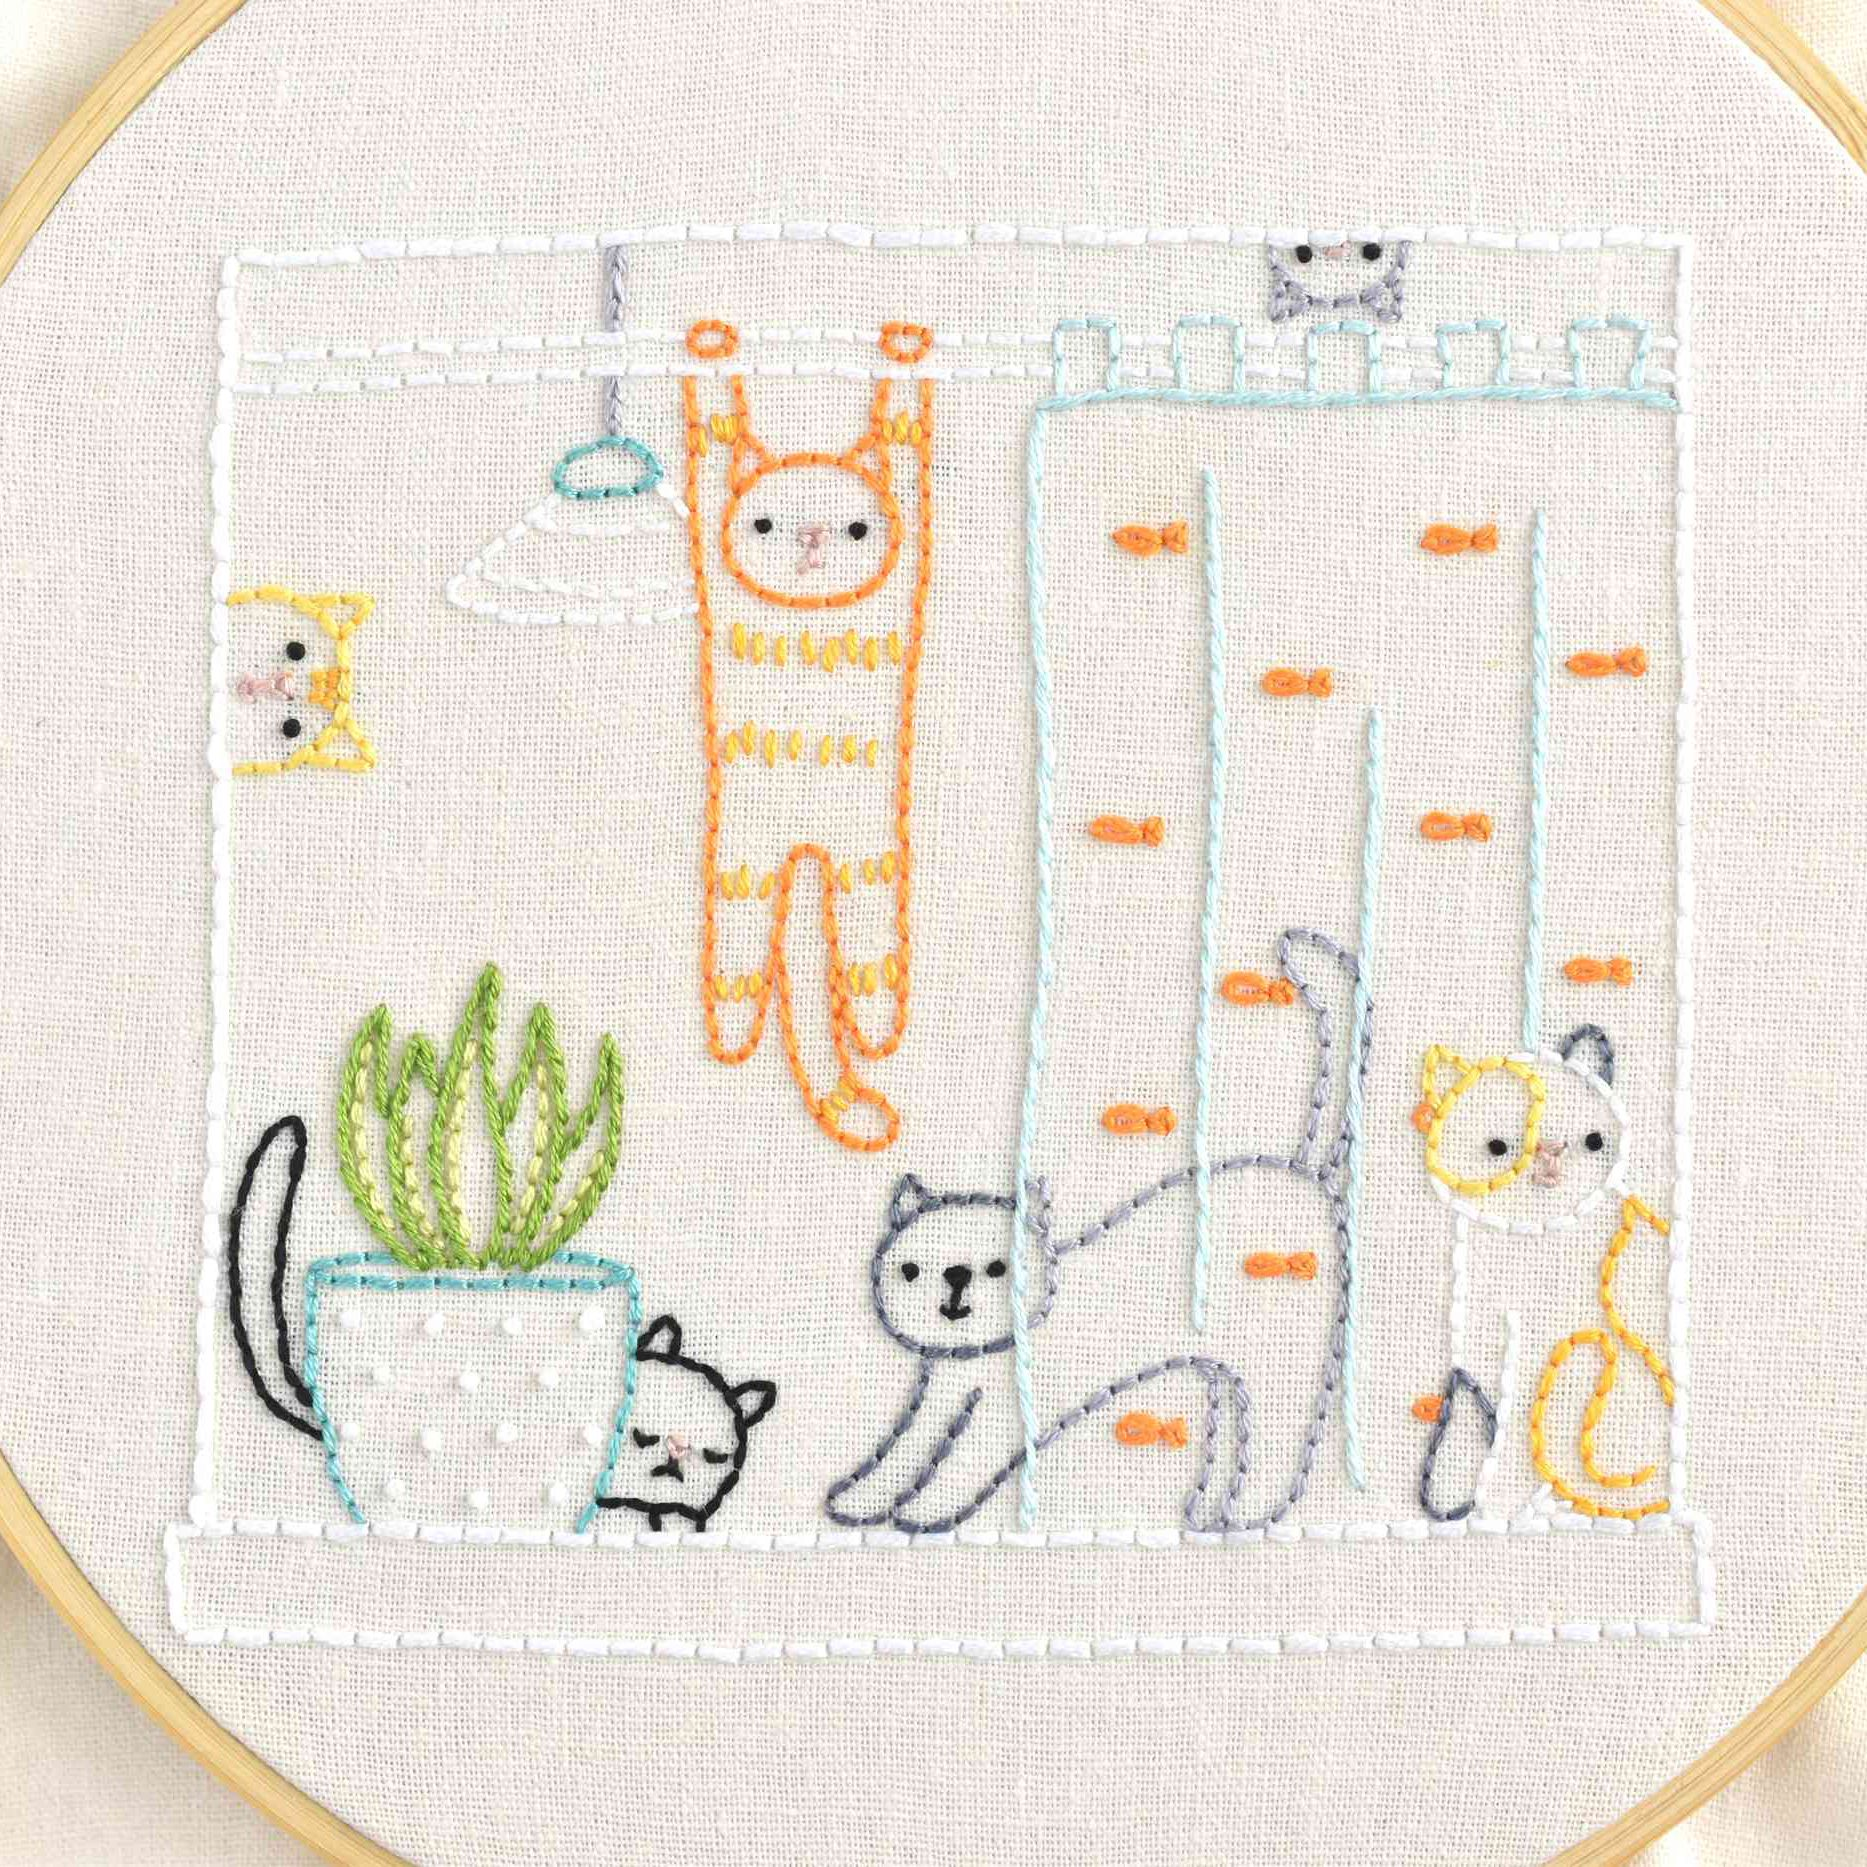 Our Top 20 Free Embroidery Designs